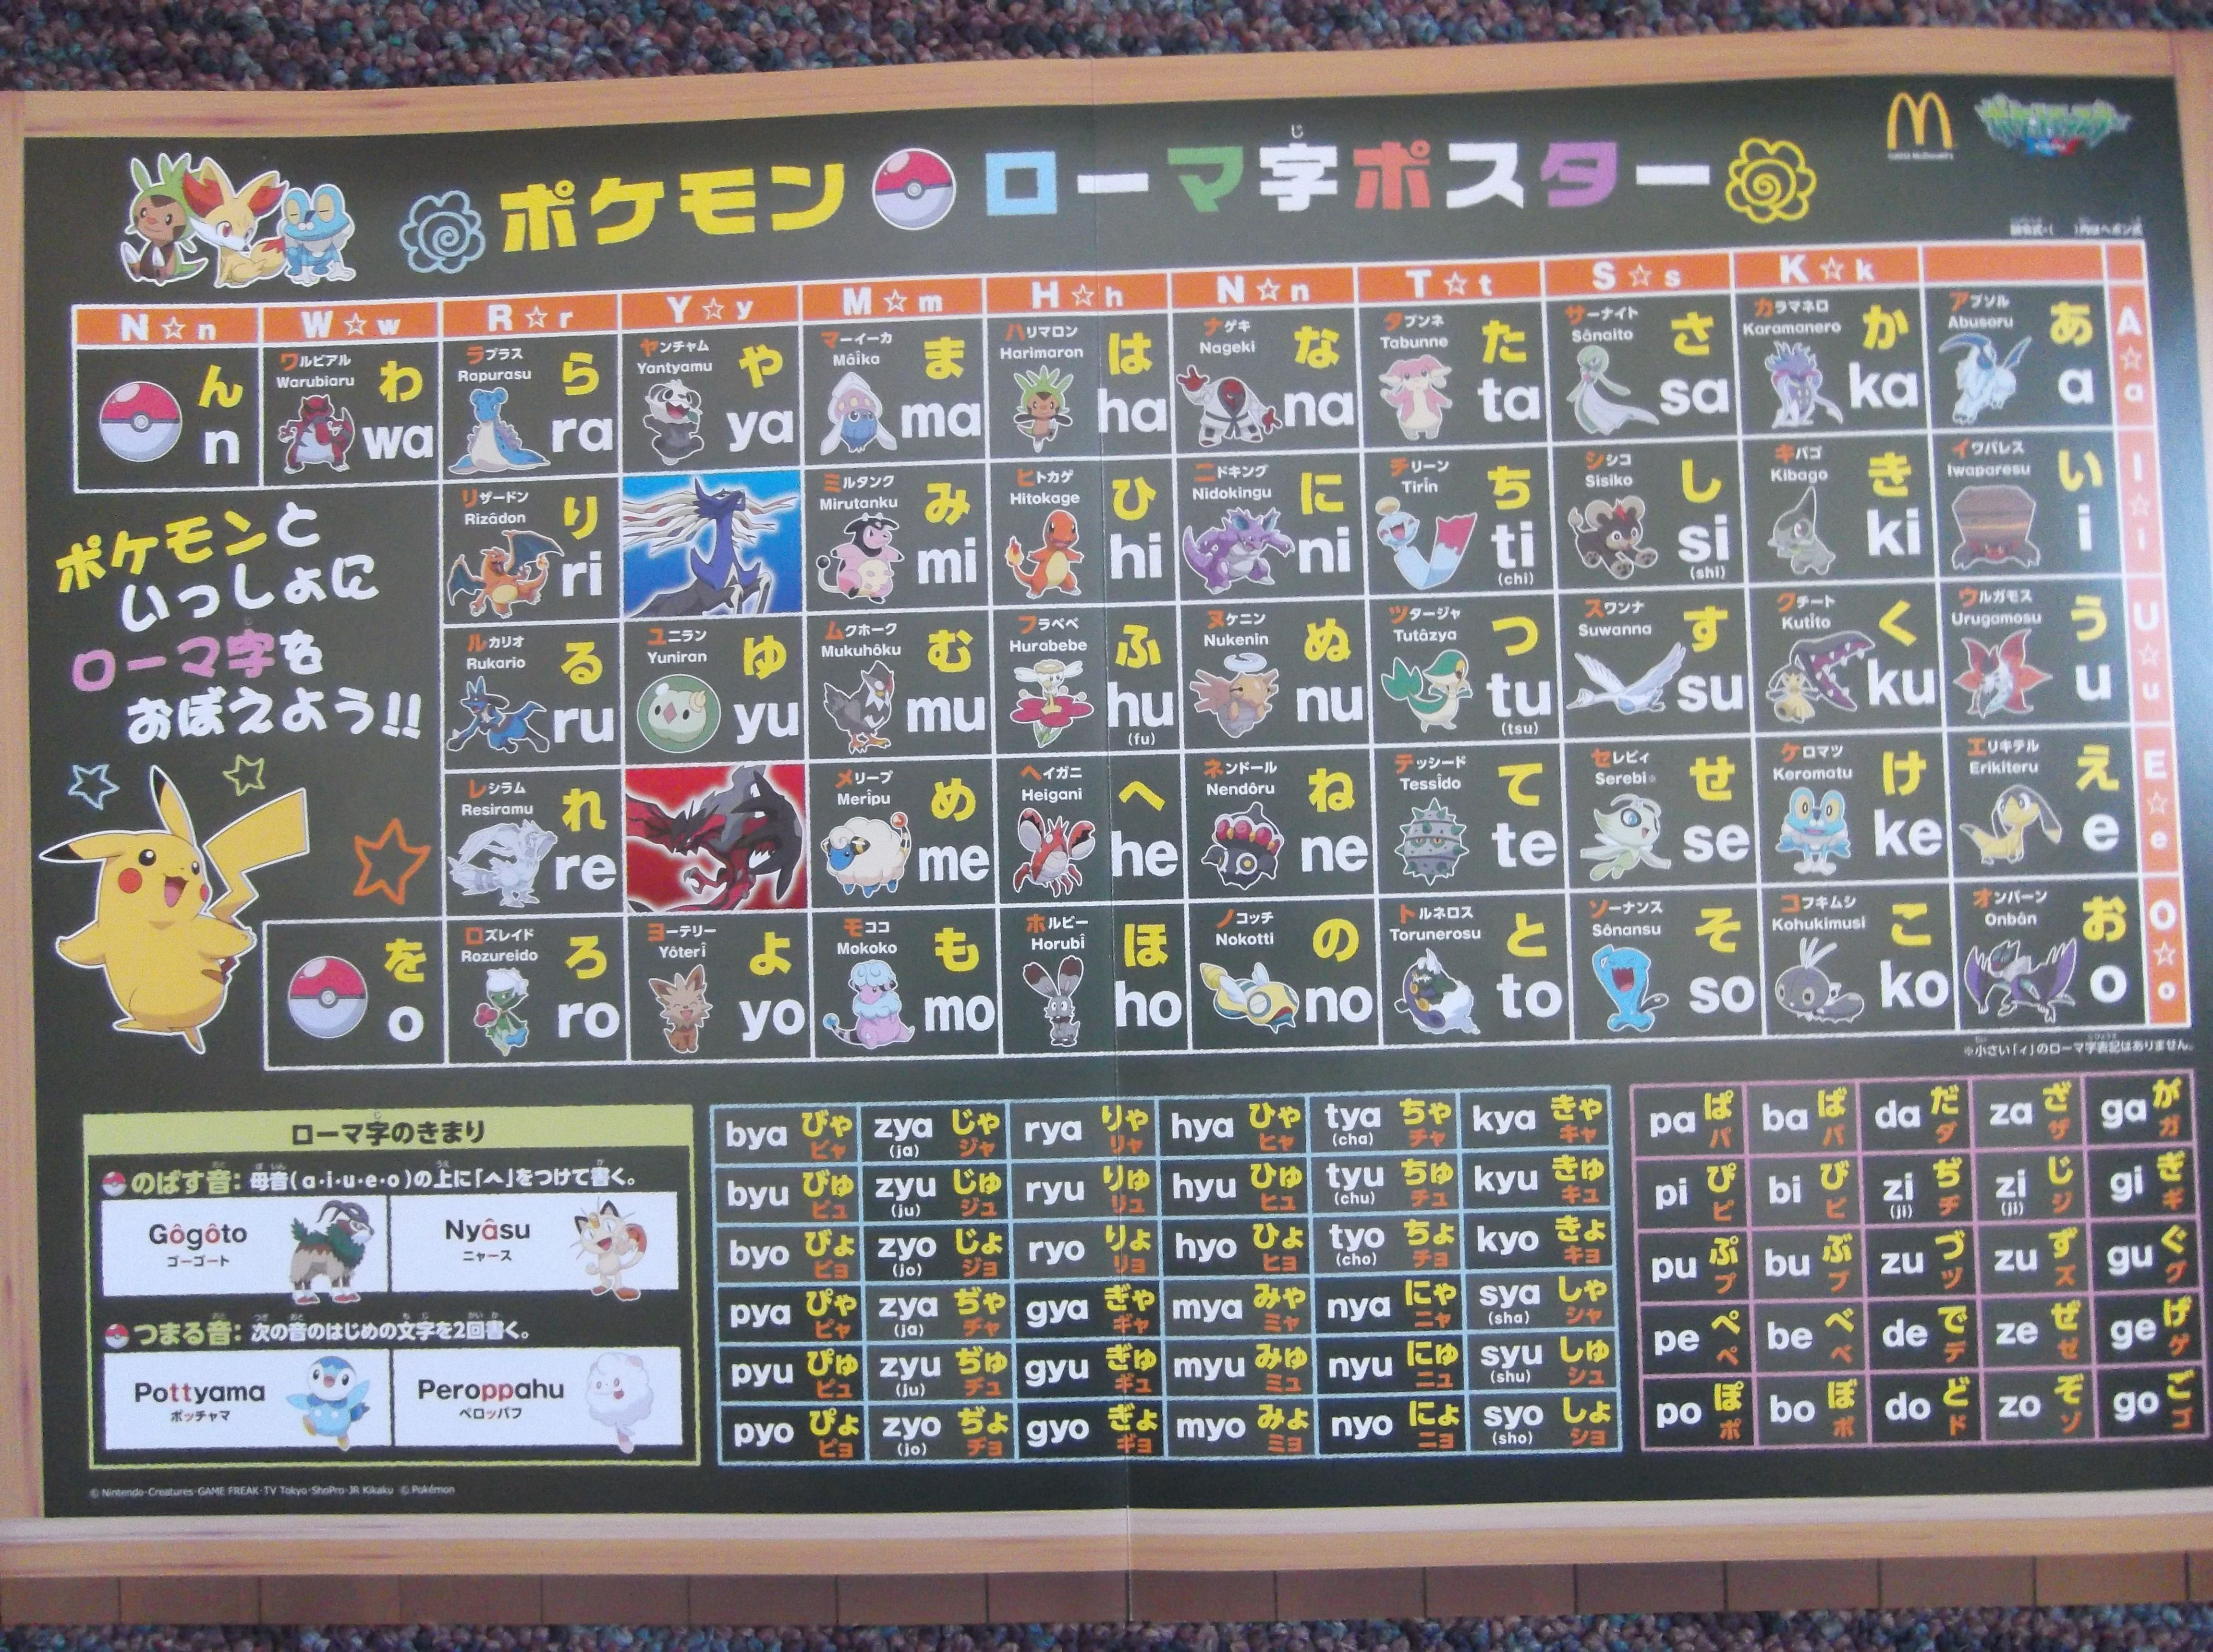 Learn basic Japanese with Pokemon! From a McDonald's in